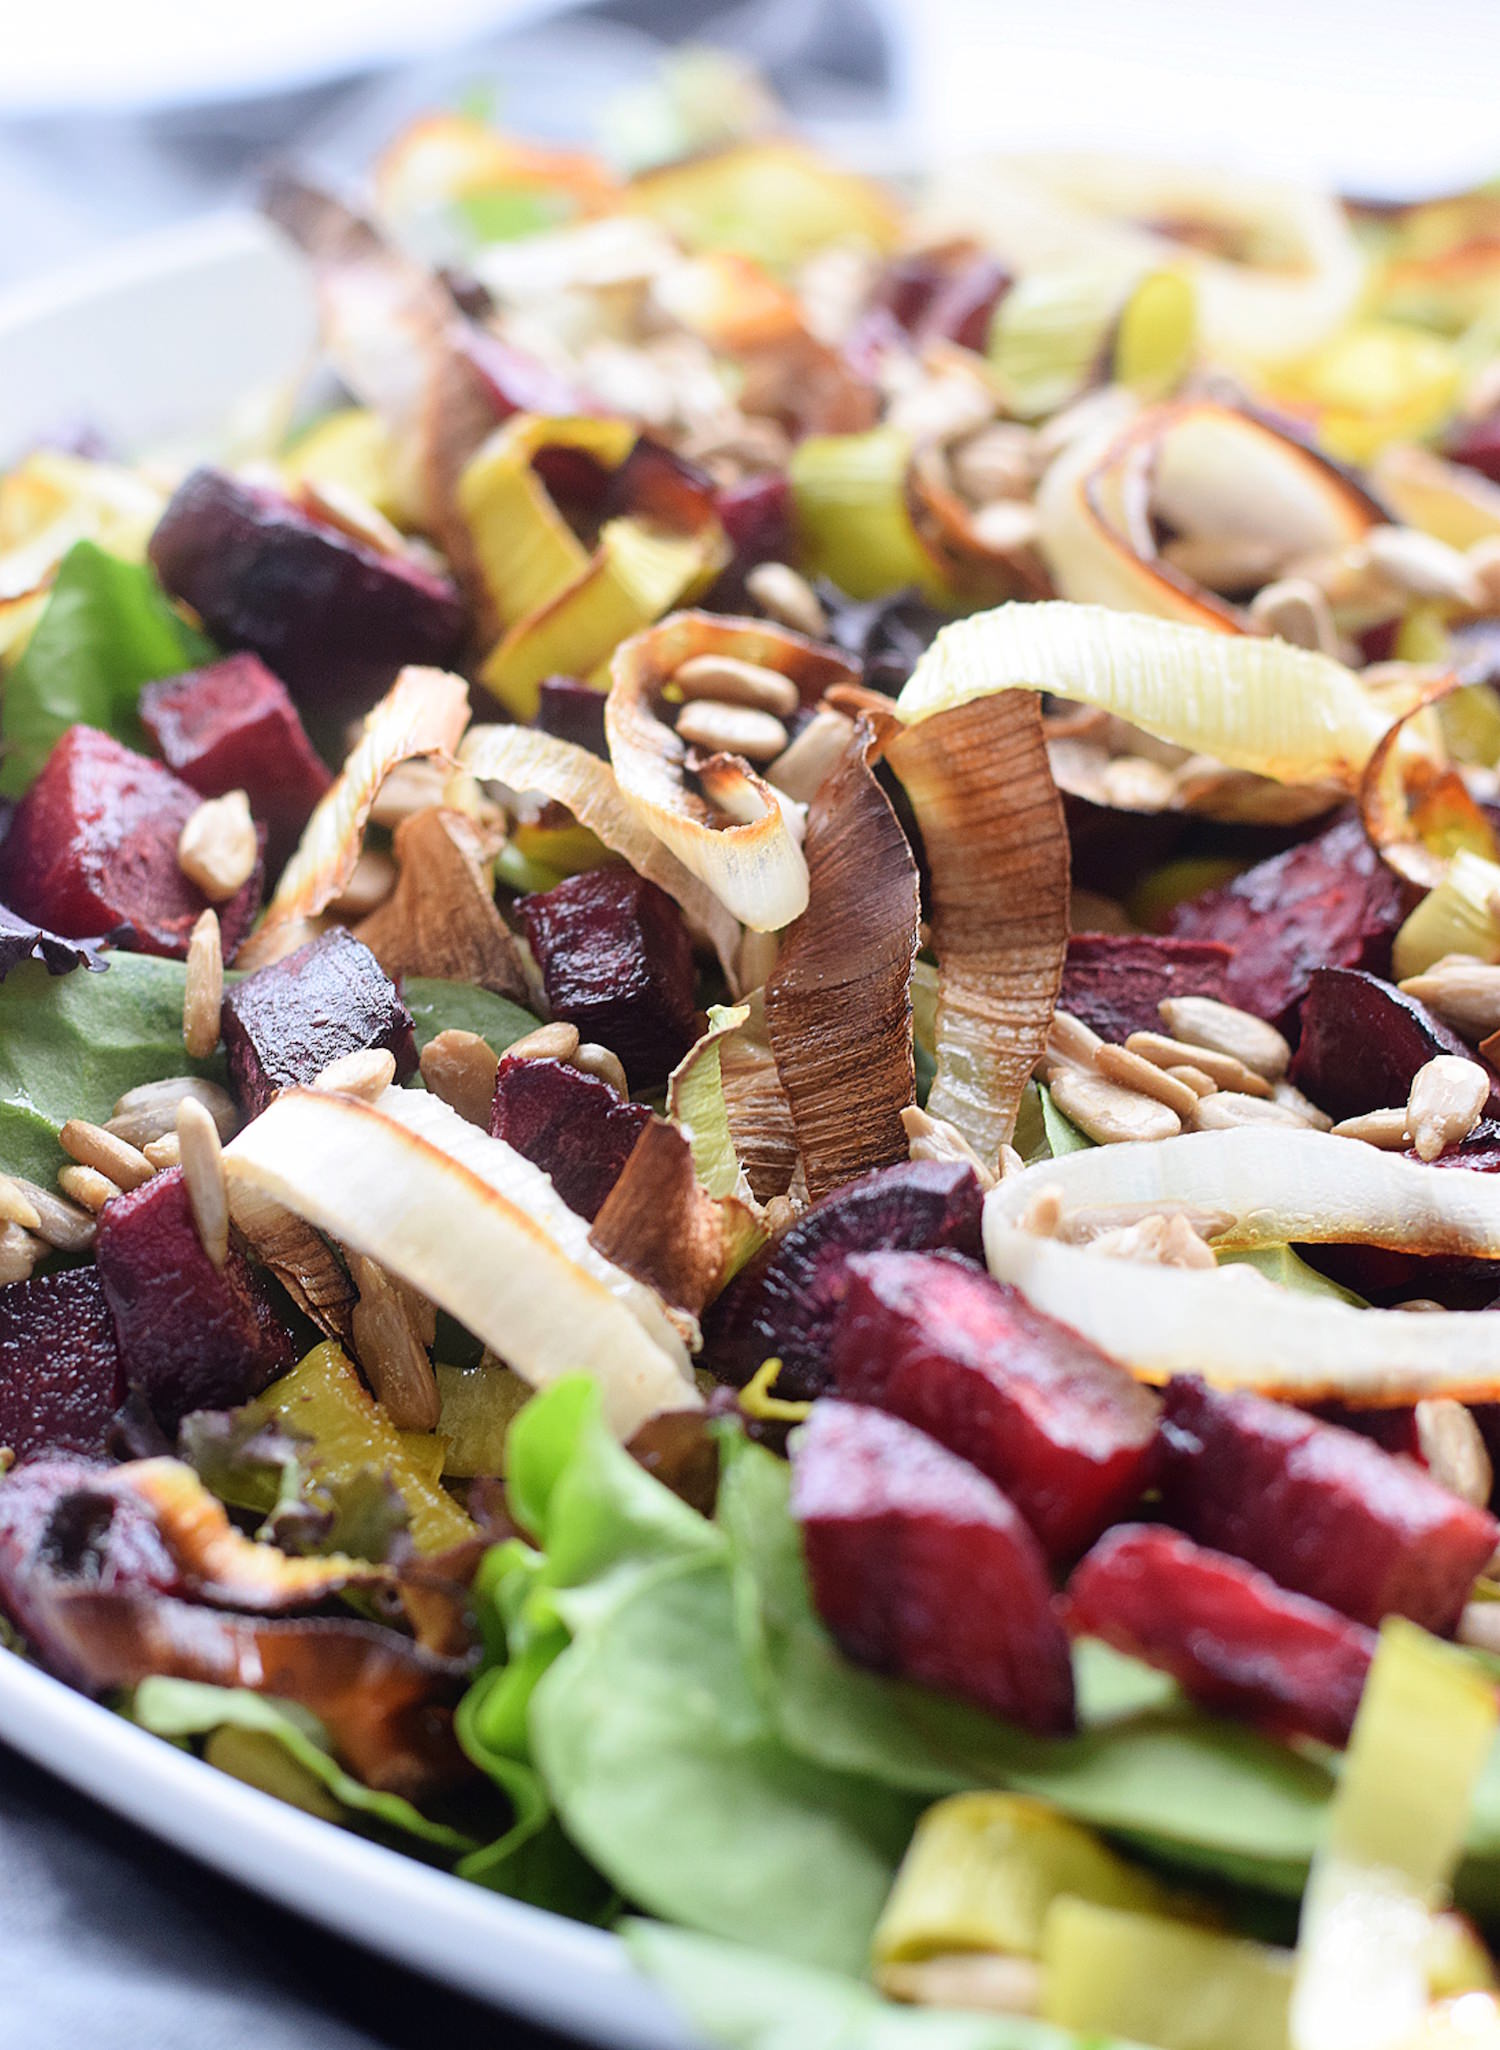 Roasted Leek and Beet Salad: mixed greens, roasted beets and leeks, sunflower seeds, and an olive oil-soy sauce dressing. So wholesome and delicious! | TrufflesandTrends.com